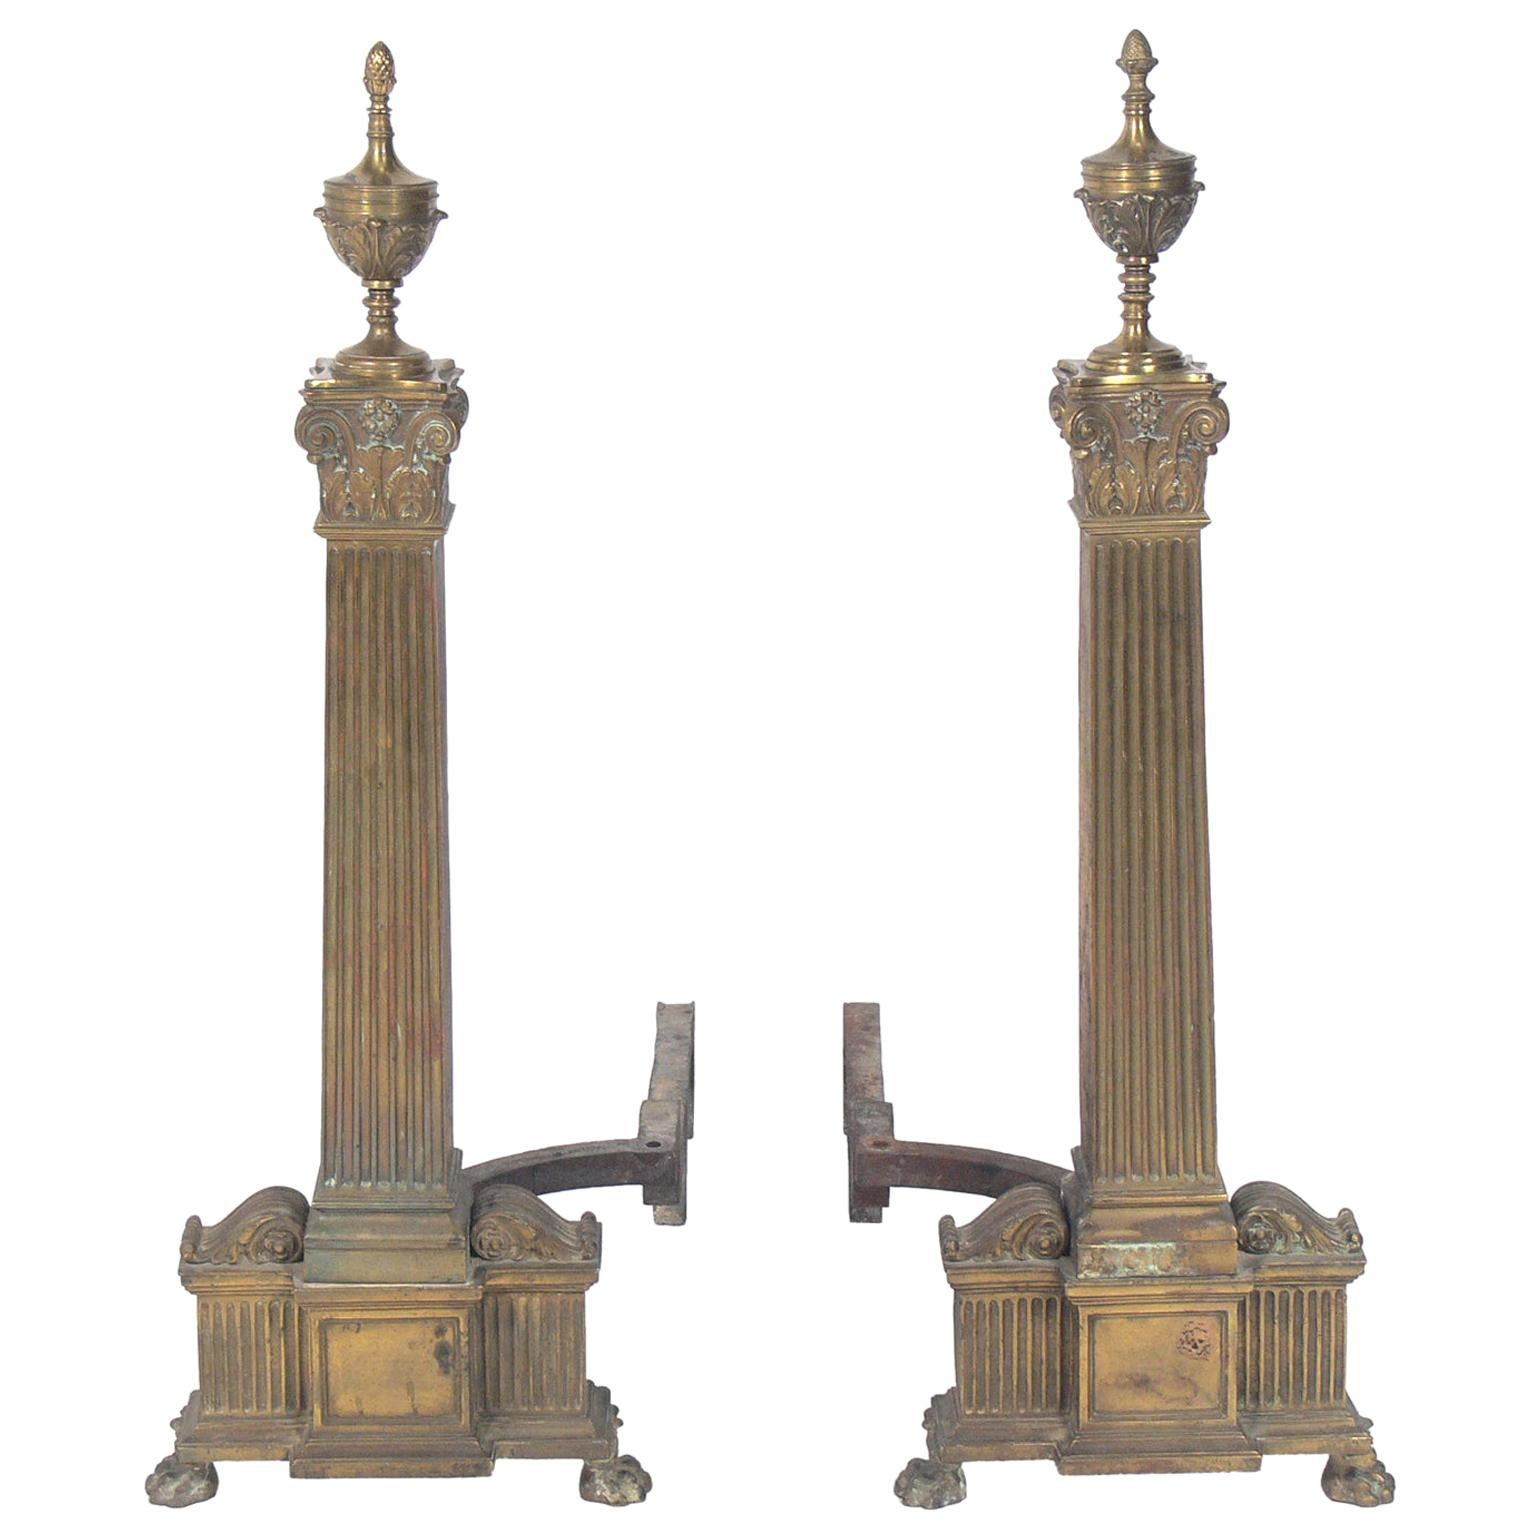 Large Scale Andirons by Dorothy Draper for The Greenbrier Hotel